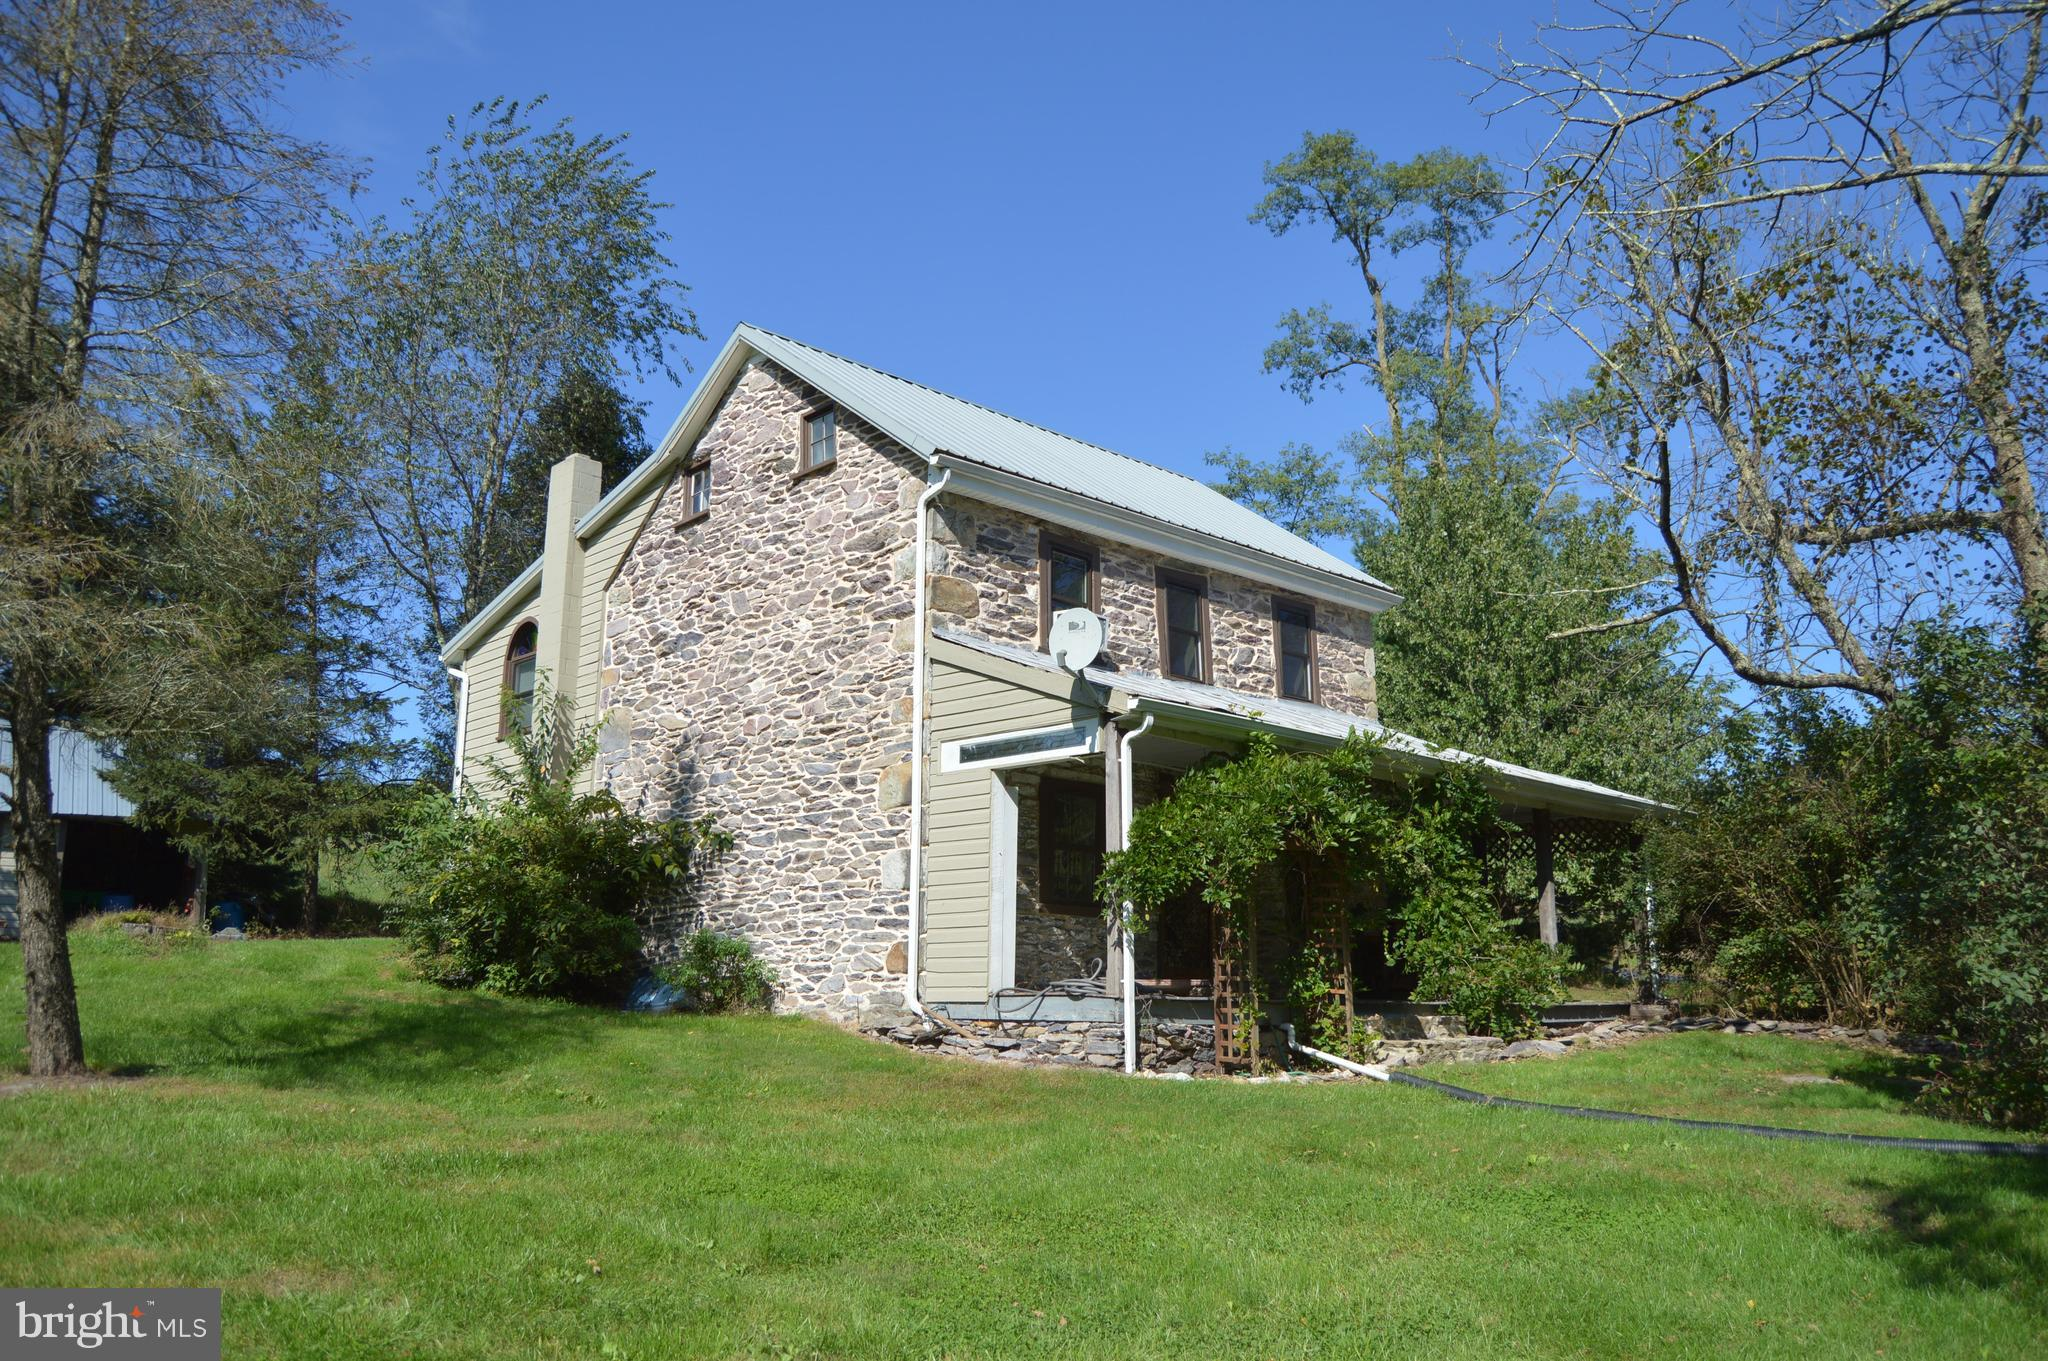 1160 JACK ROAD, ORRTANNA, PA 17353